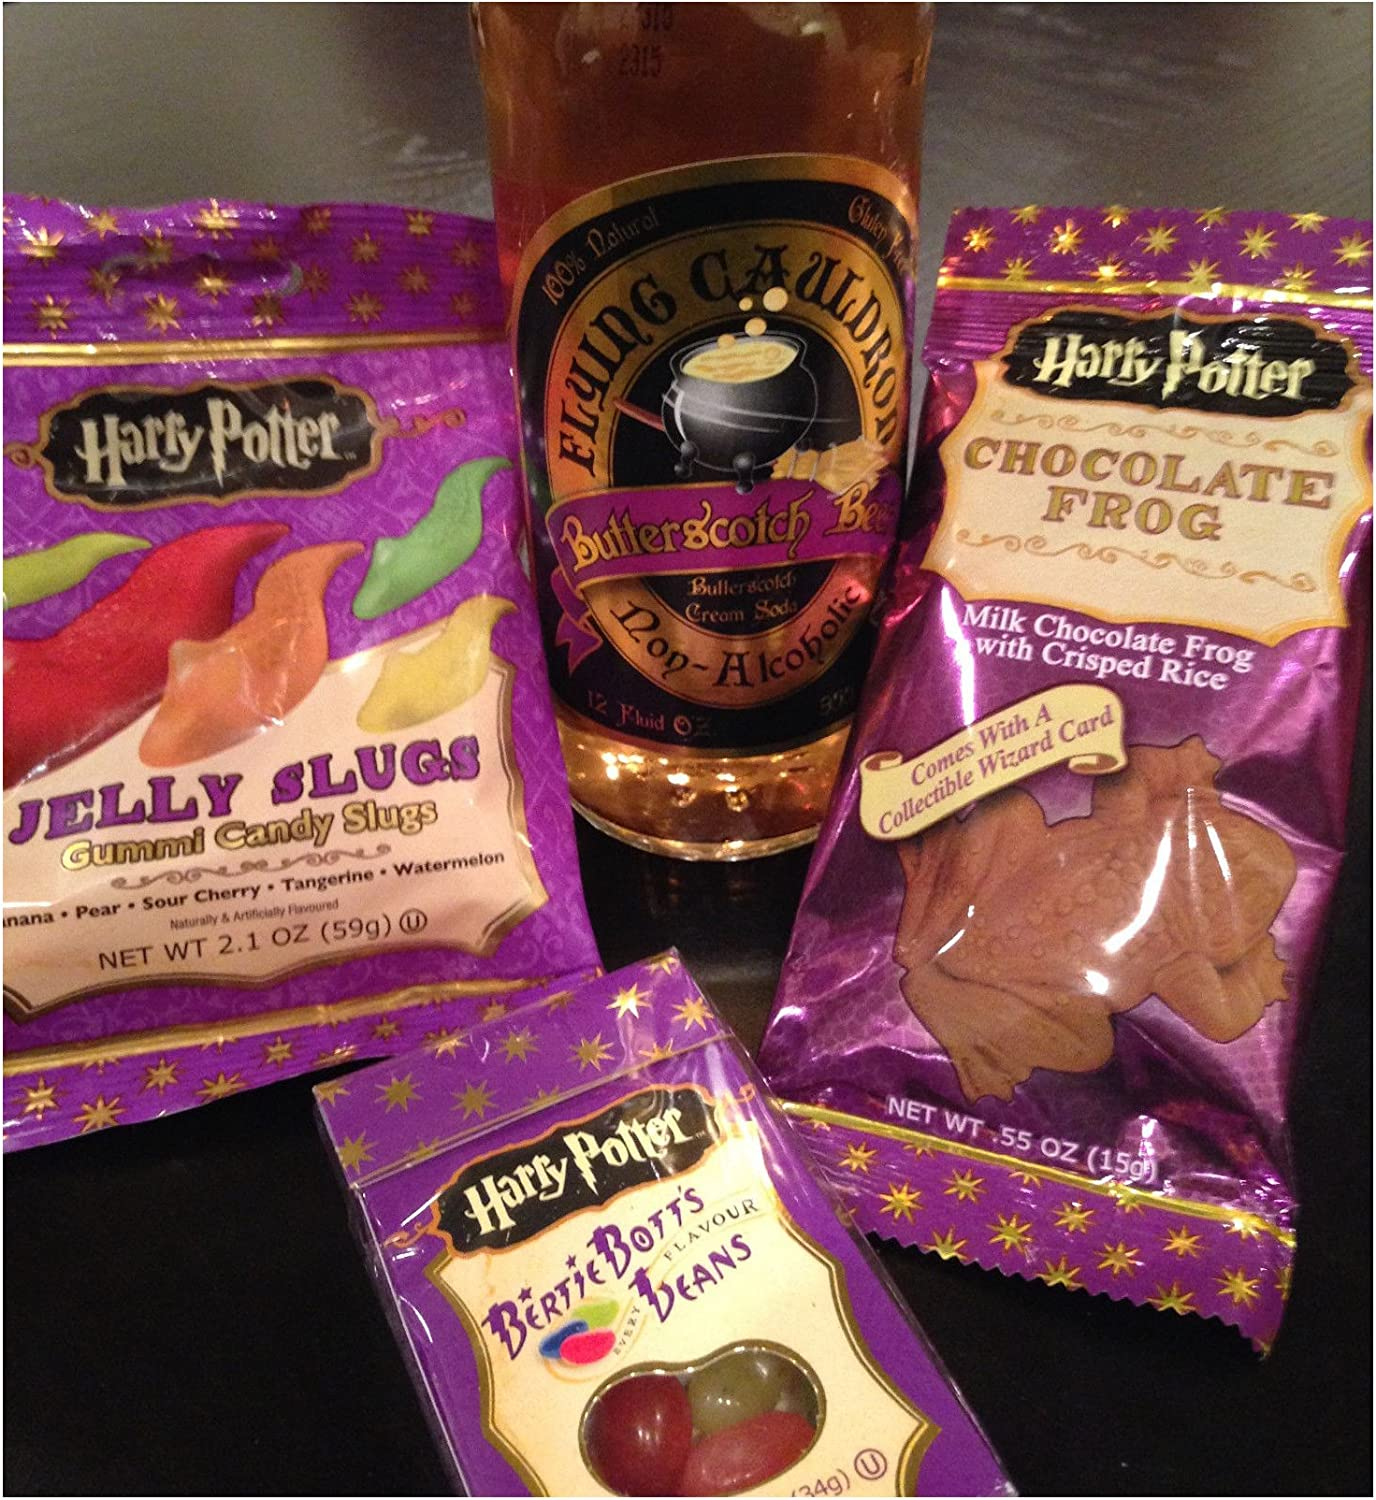 Harry Potter Candy 4pc Gift Set Butterbeer Bertie Botts Jelly Slugs Choc Frog Top Buyer's Choice